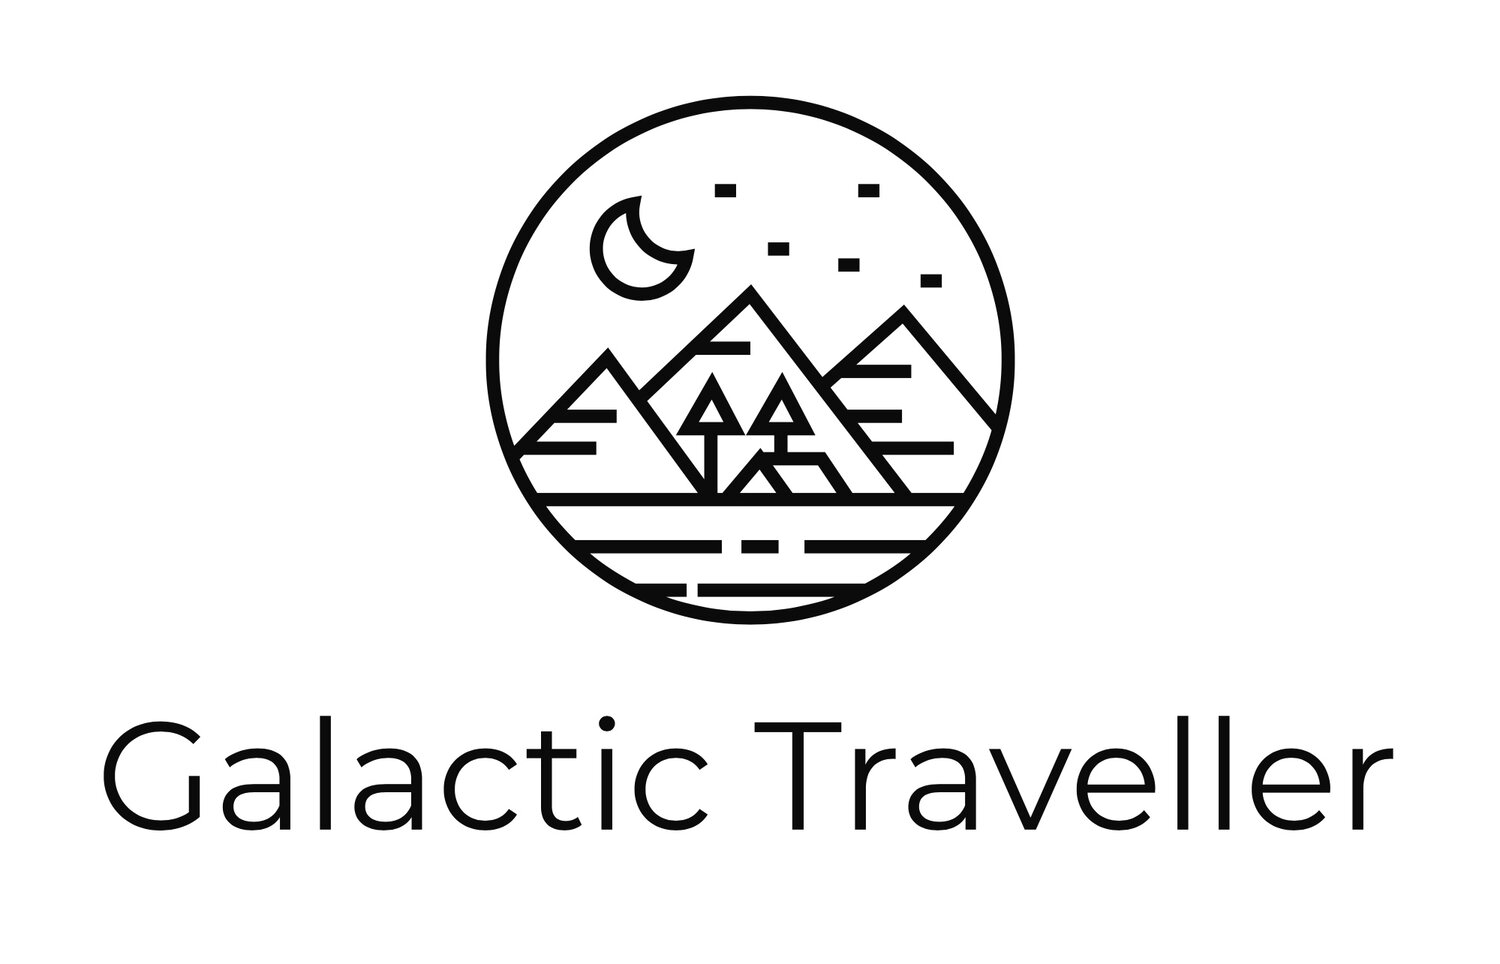 Galactic Traveller